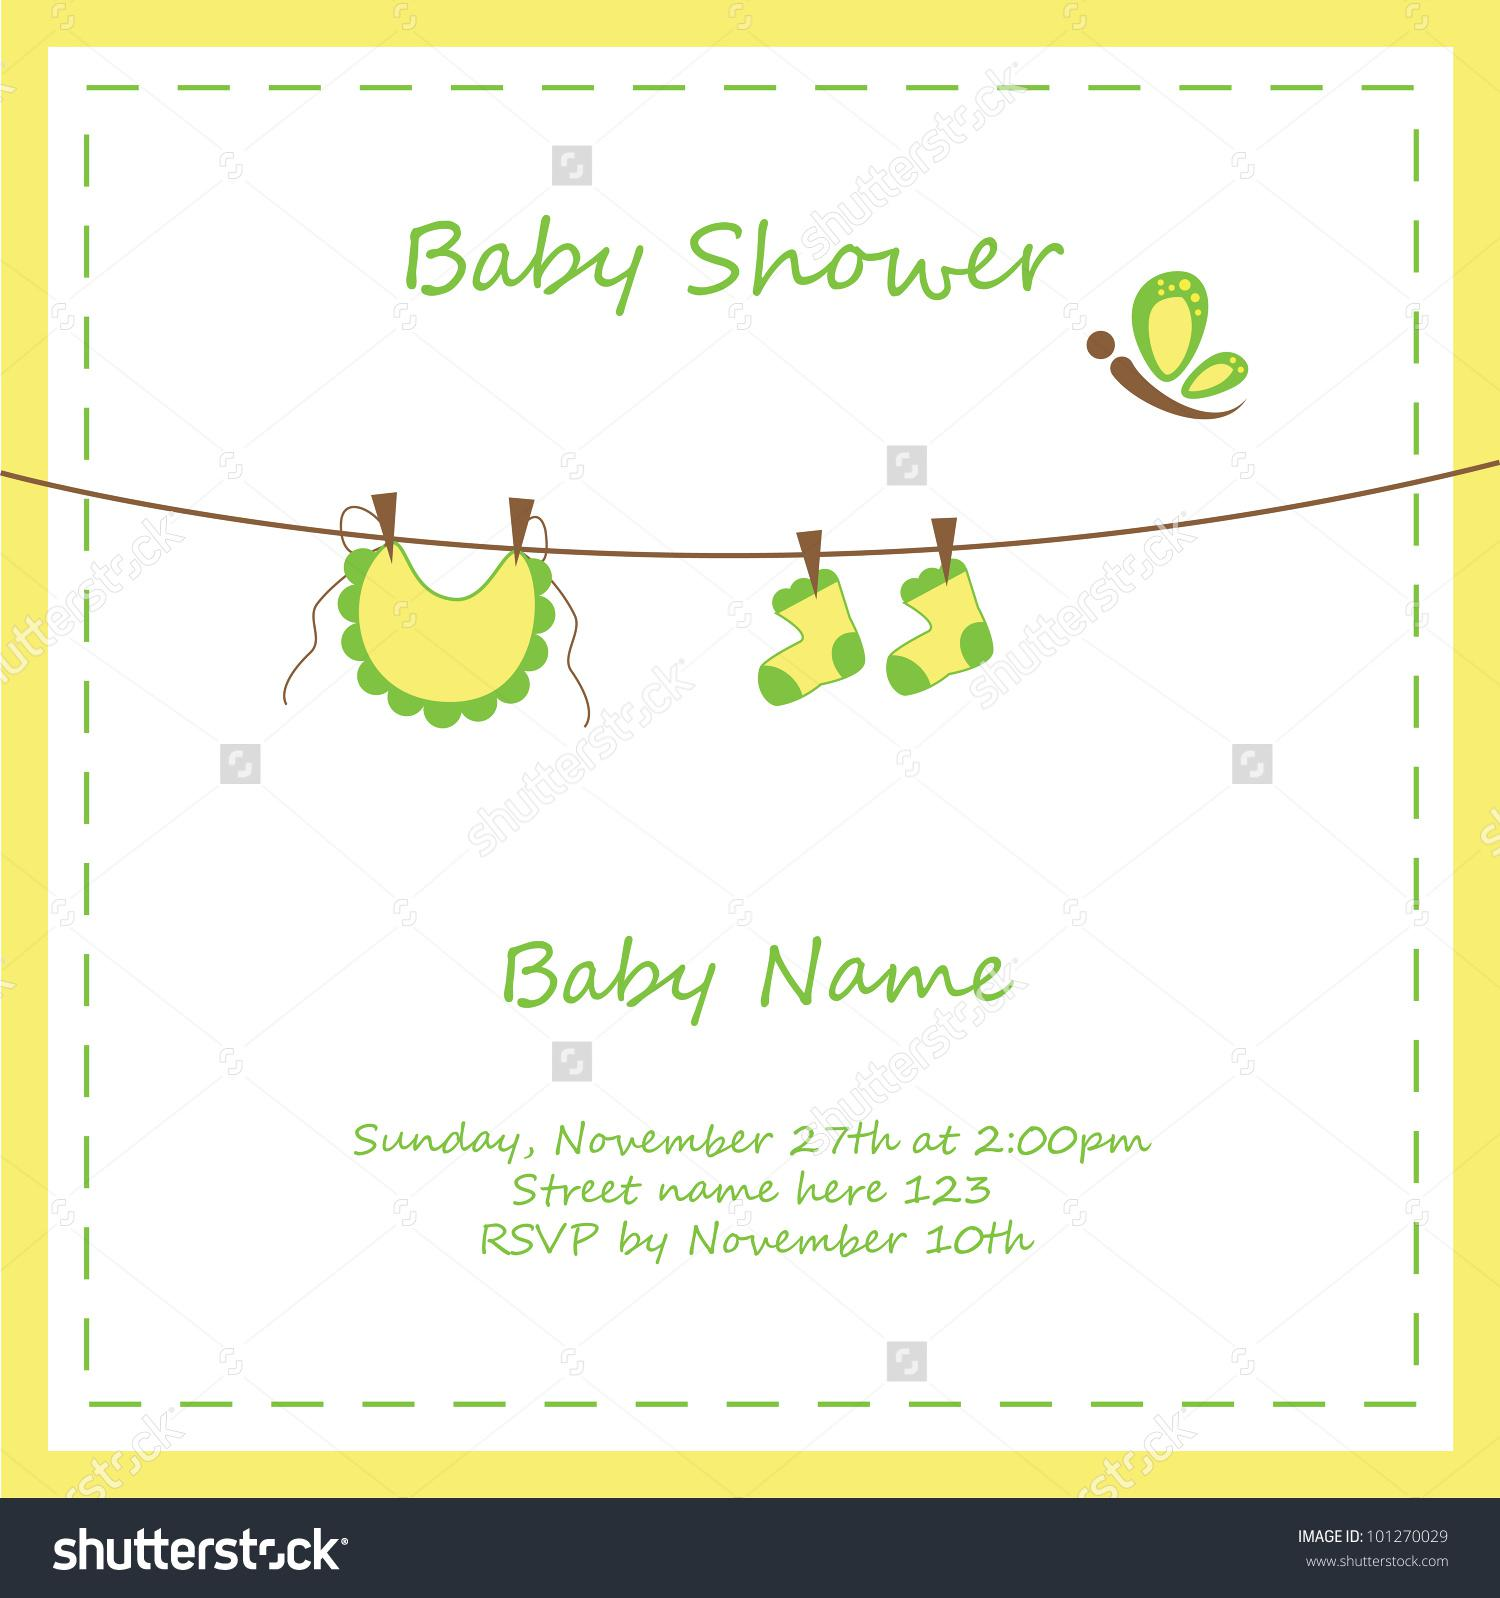 Free Neutral Baby Shower Invitation Templates